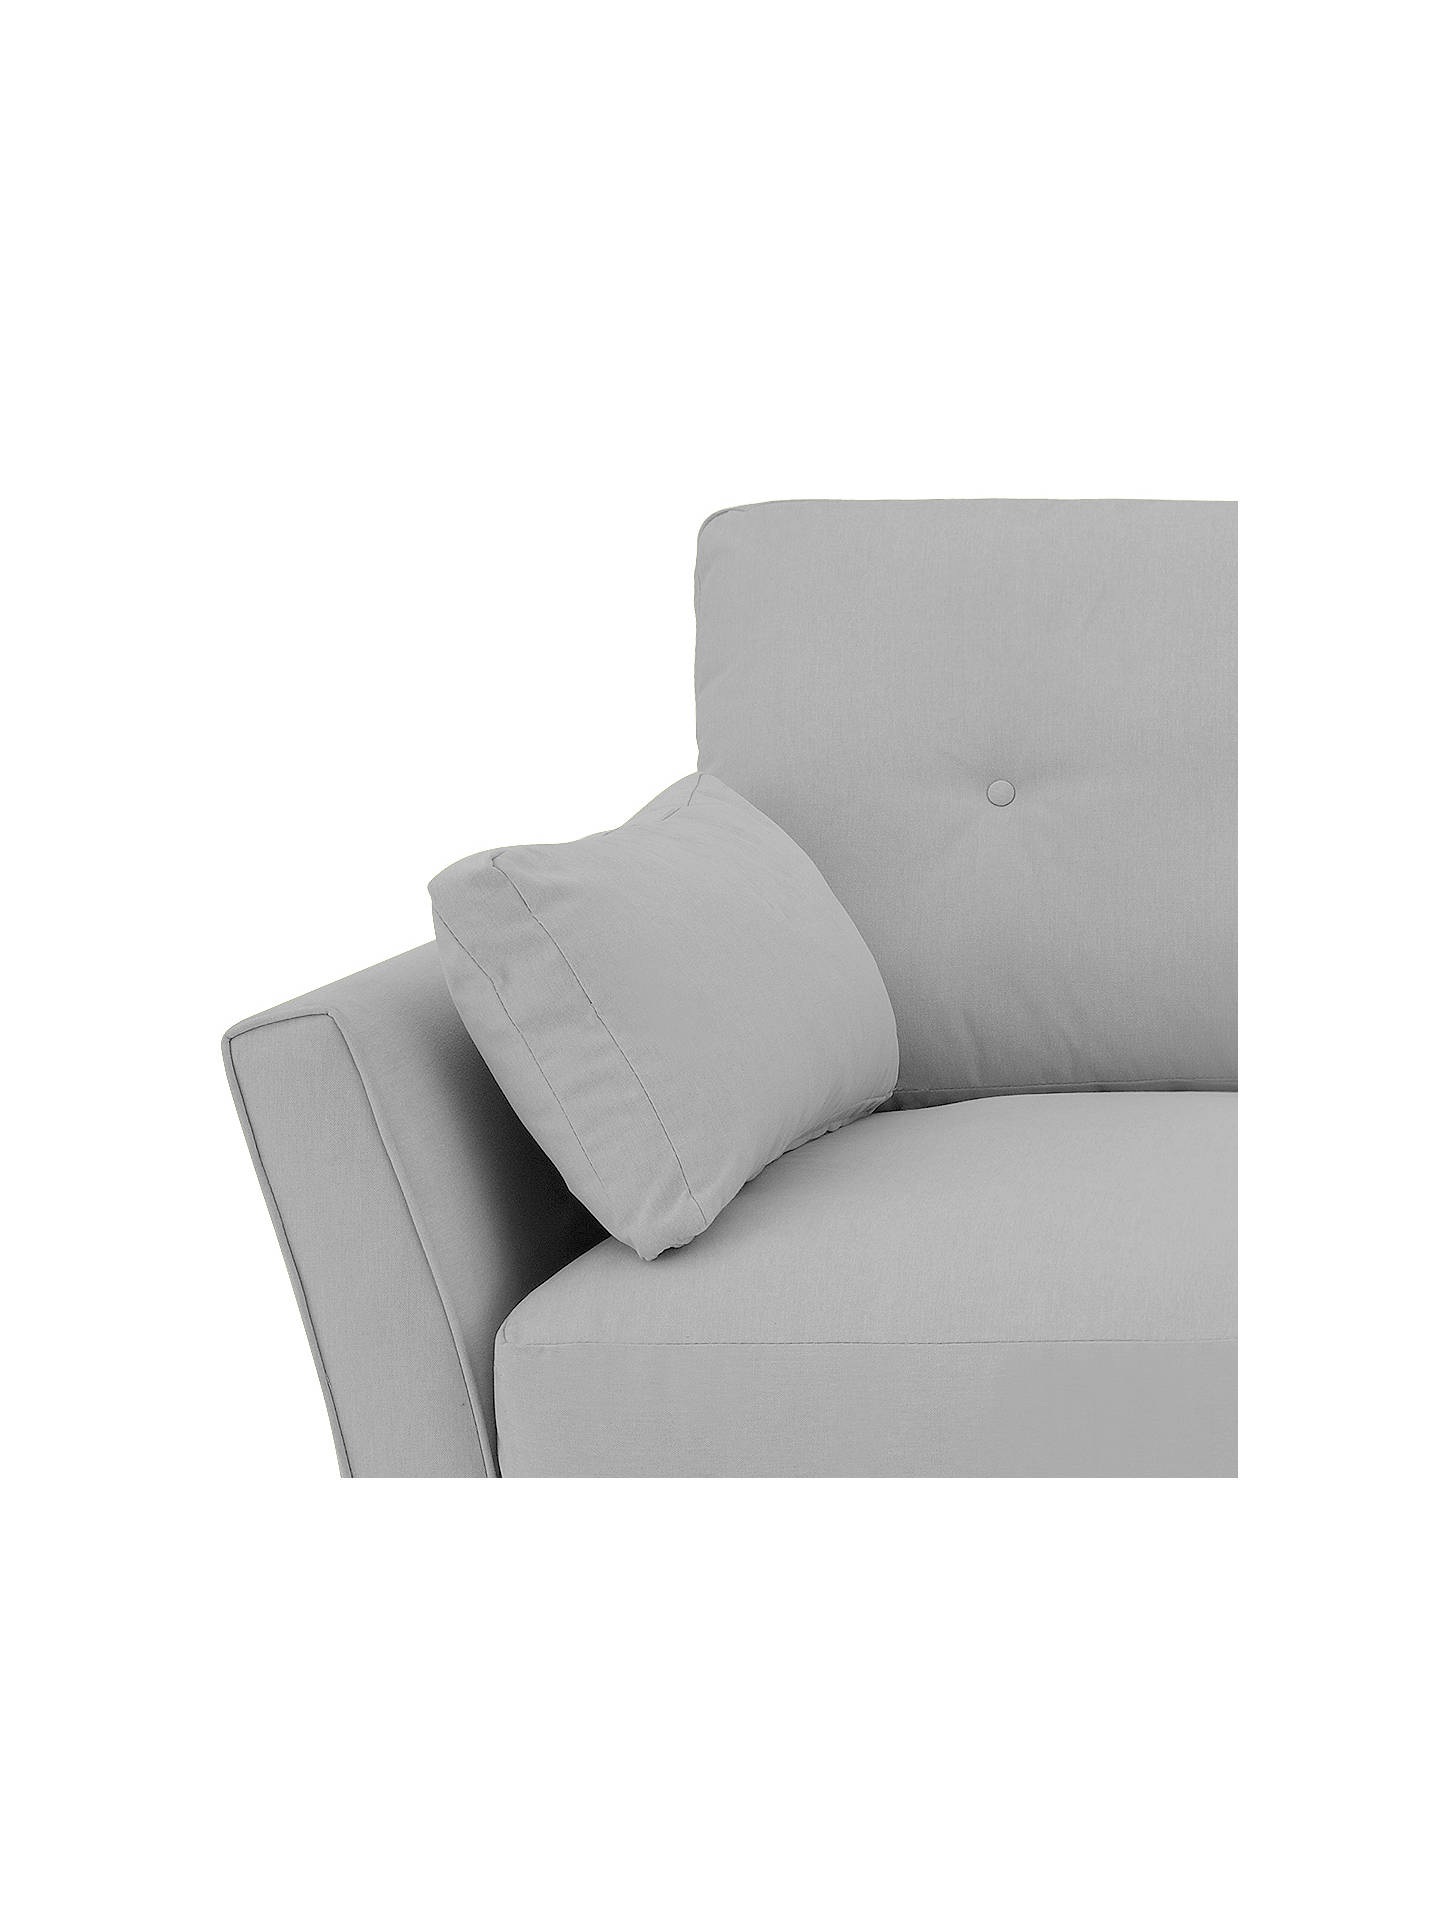 Astounding John Lewis Partners Chopin Small Pocket Sprung Sofa Bed Squirreltailoven Fun Painted Chair Ideas Images Squirreltailovenorg